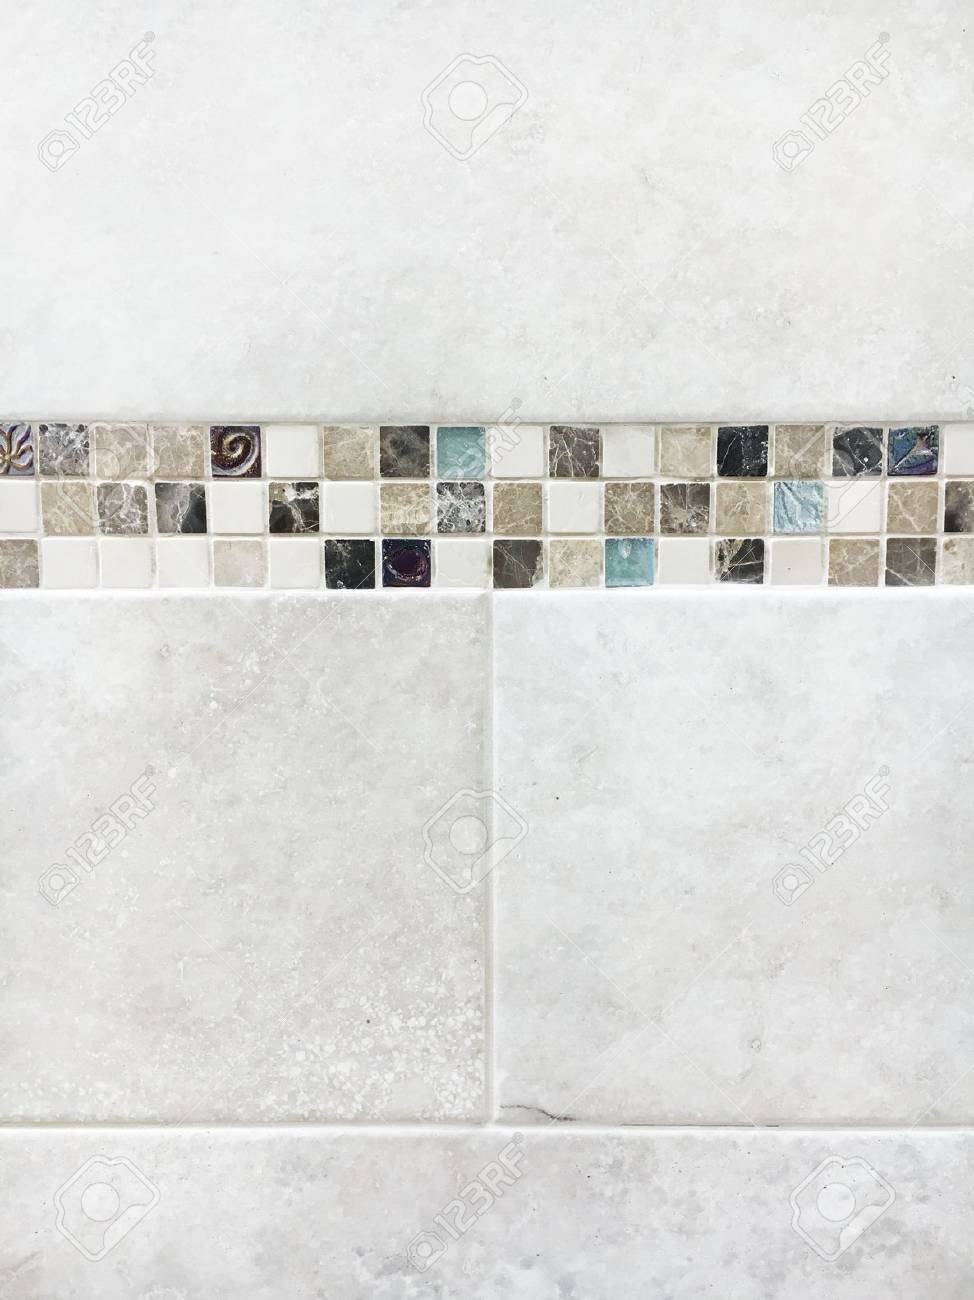 Decorative tiles in a wet room as a background image stock photo decorative tiles in a wet room as a background image stock photo 57904828 dailygadgetfo Choice Image